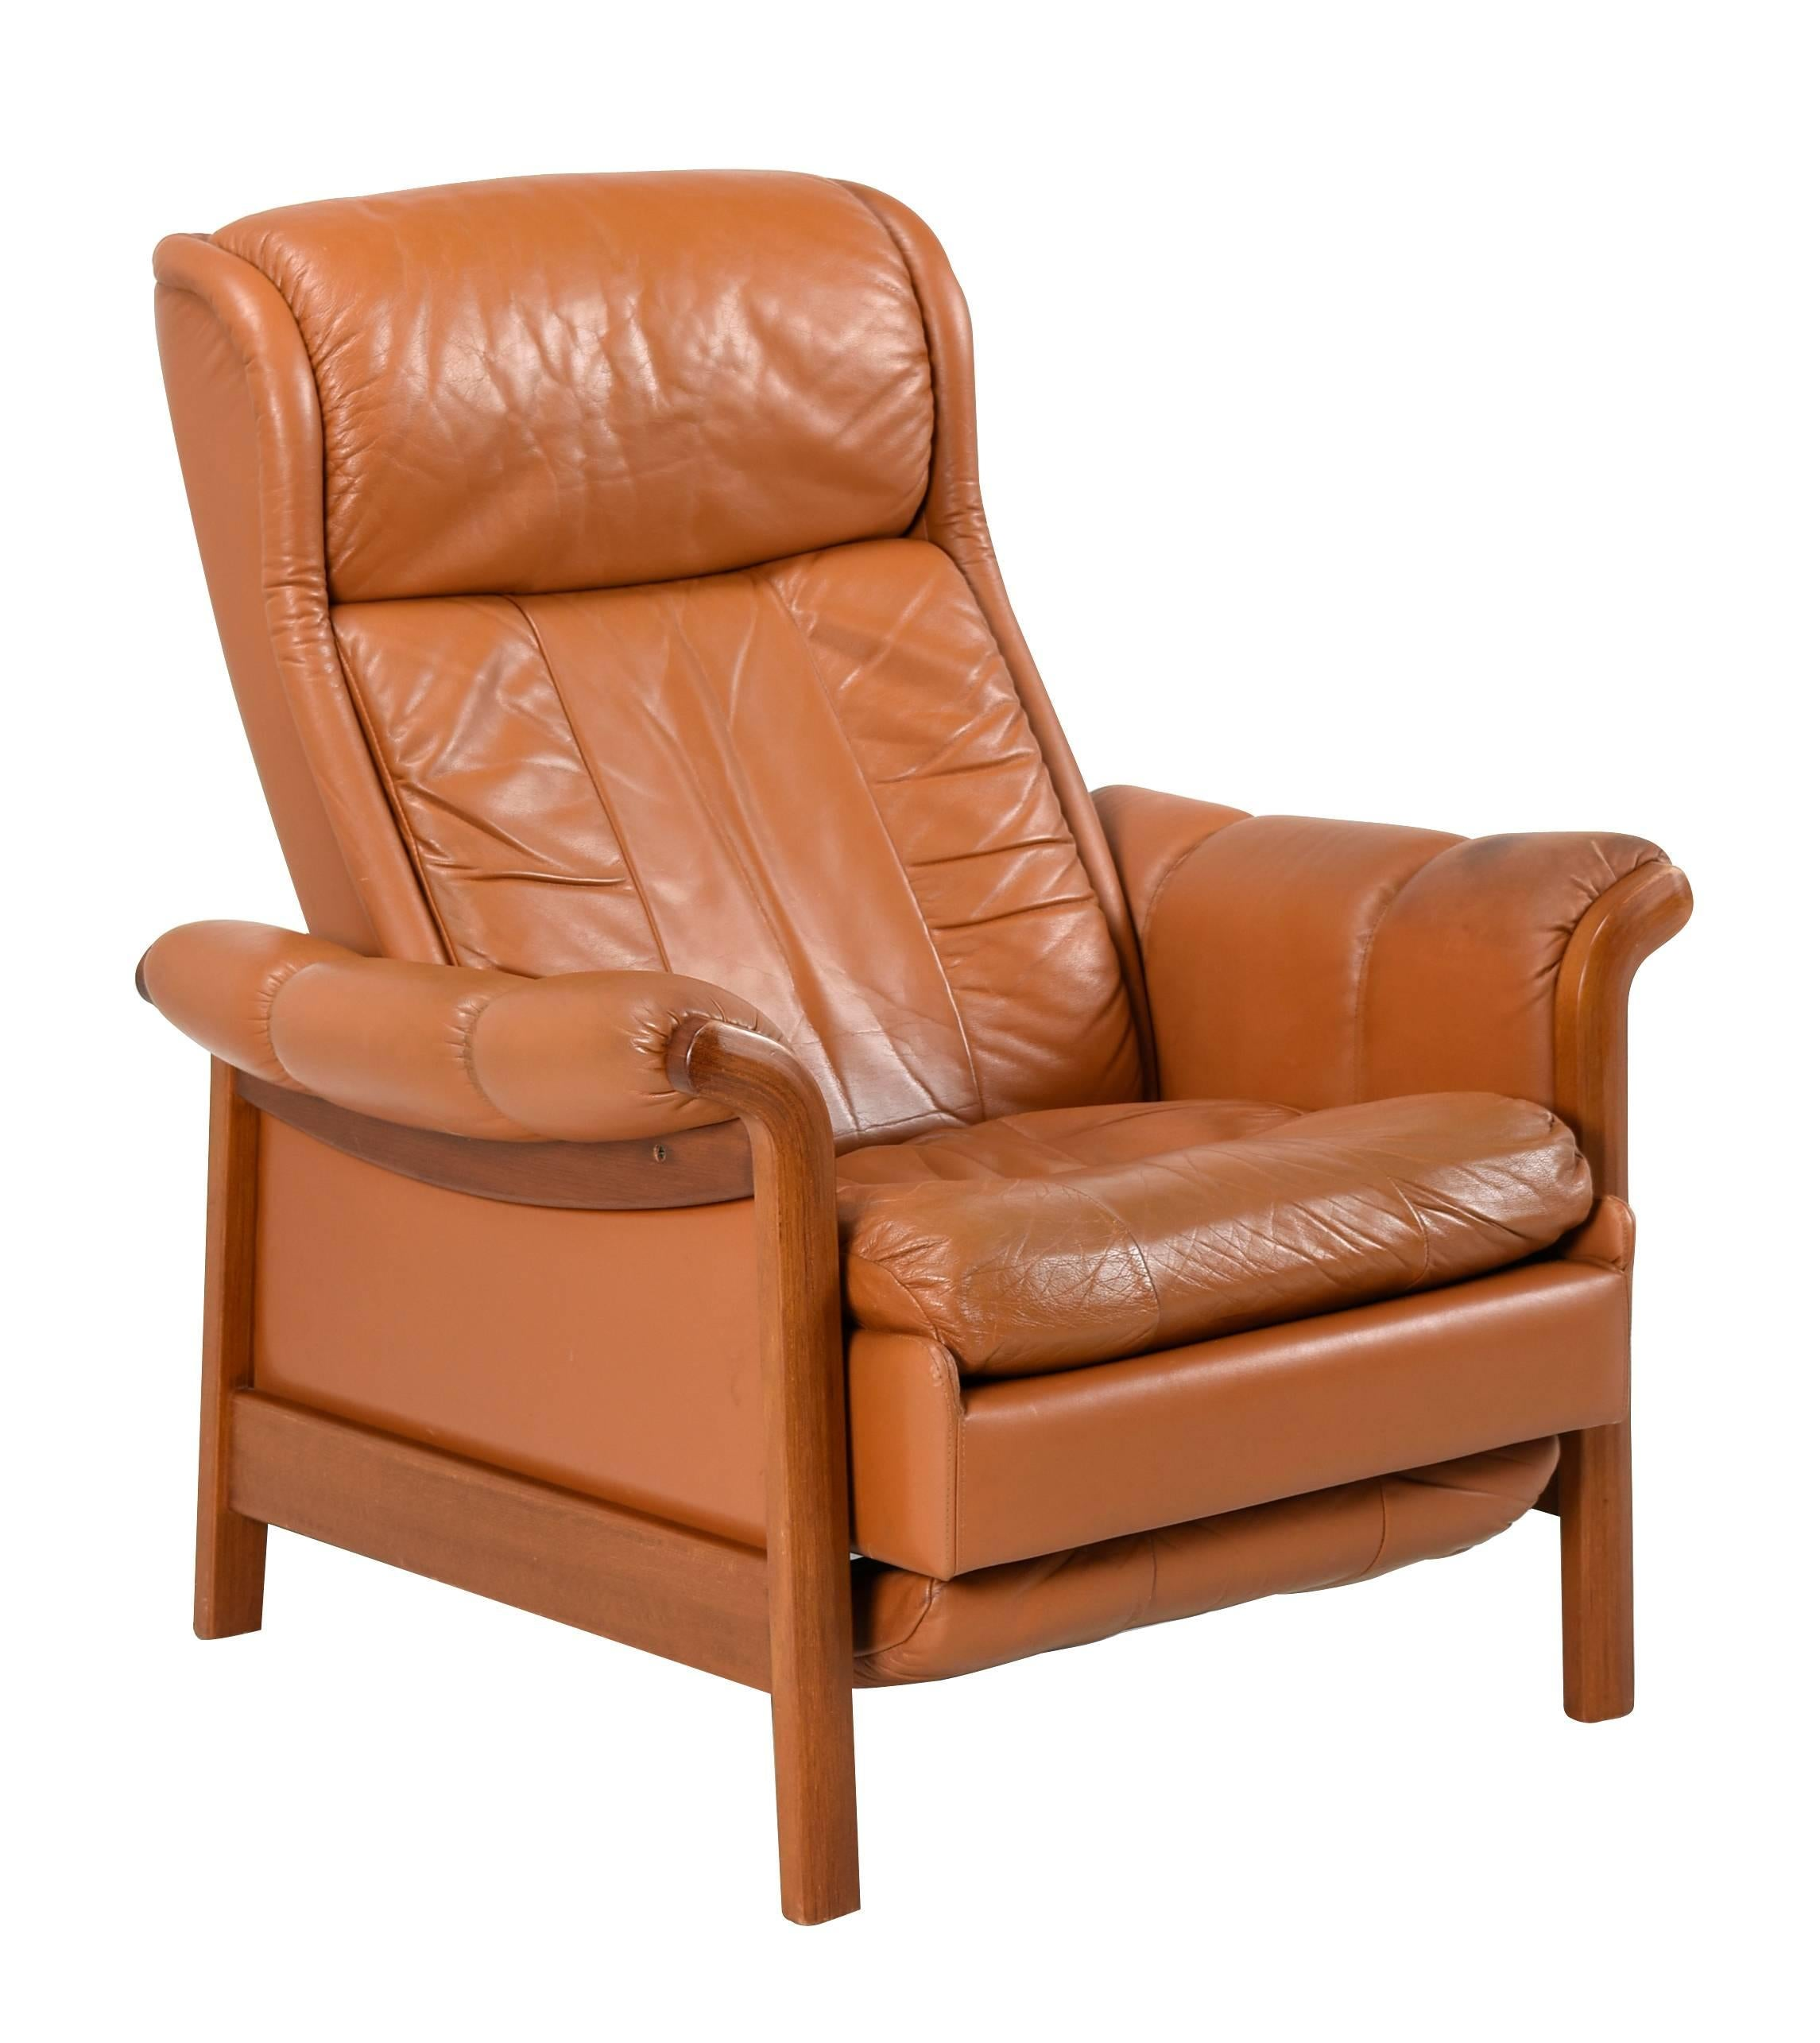 luxury archives living chair independent chairs mayfair ils lift recliner hire bent electric specialists arm tag